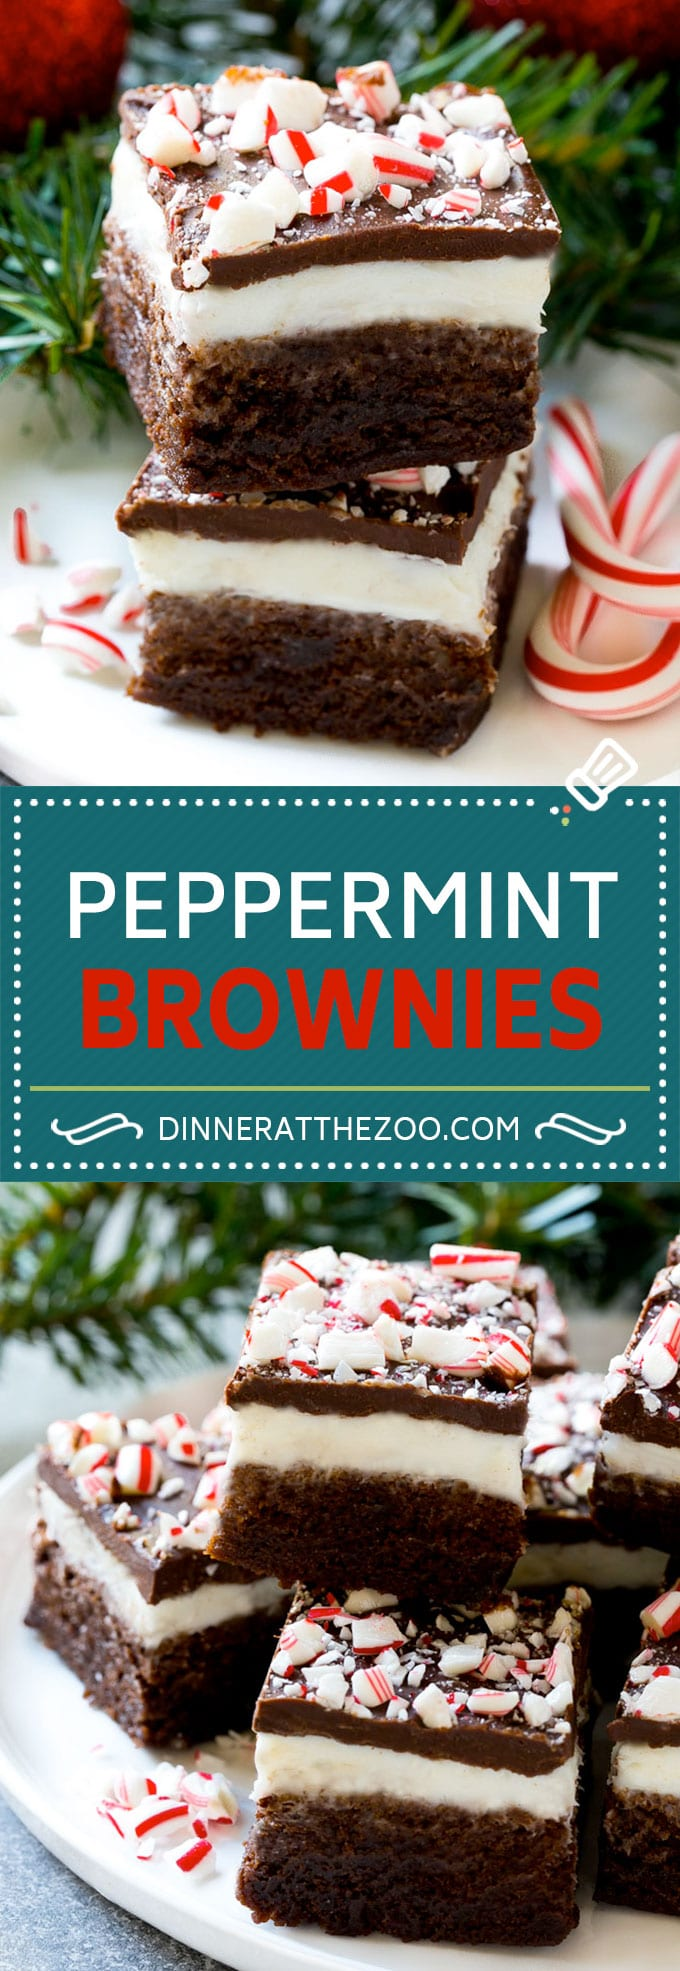 Peppermint Brownies Recipe | Holiday Brownies | Candy Cane Brownies | Mint Brownies #brownies #mint #peppermint #chocolate #dessert #christmas #dinneratthezoo